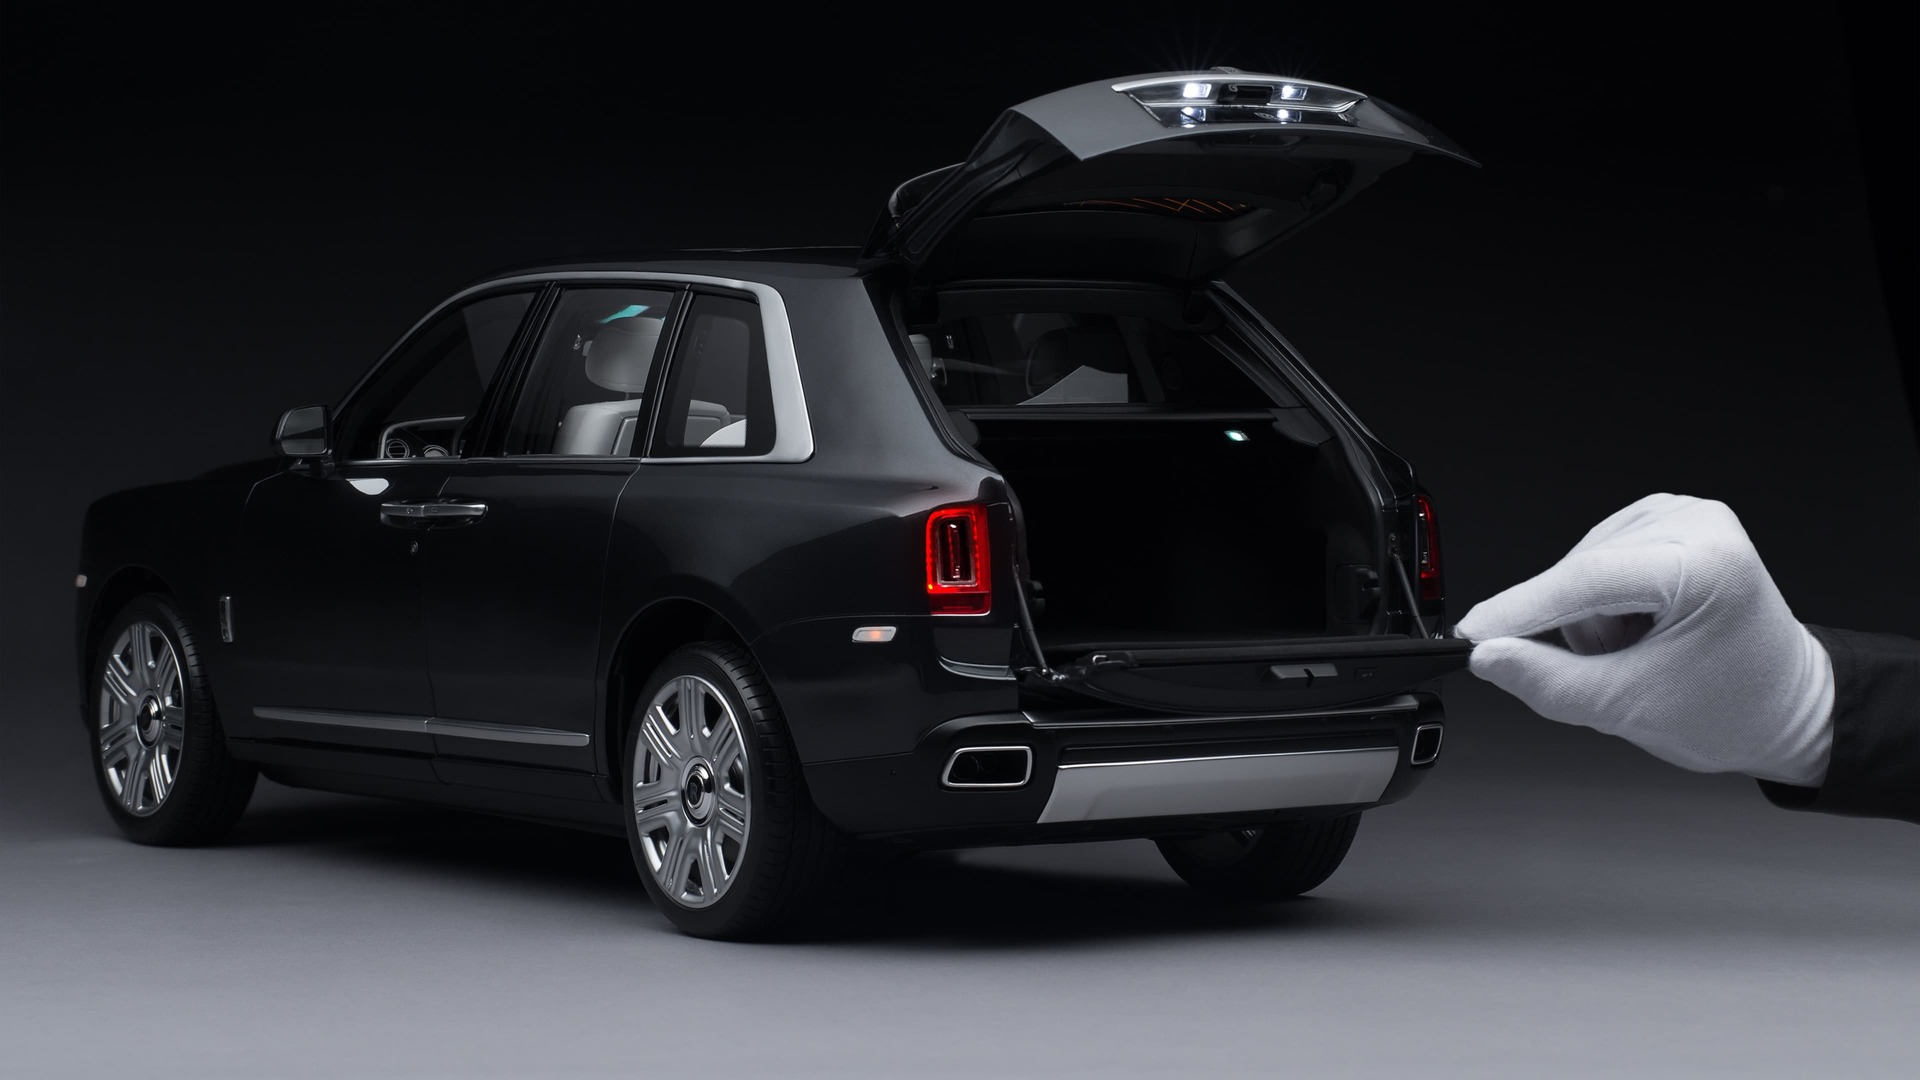 1:8 scale model of the Rolls-Royce Cullinan motor car with hand opening the trunk